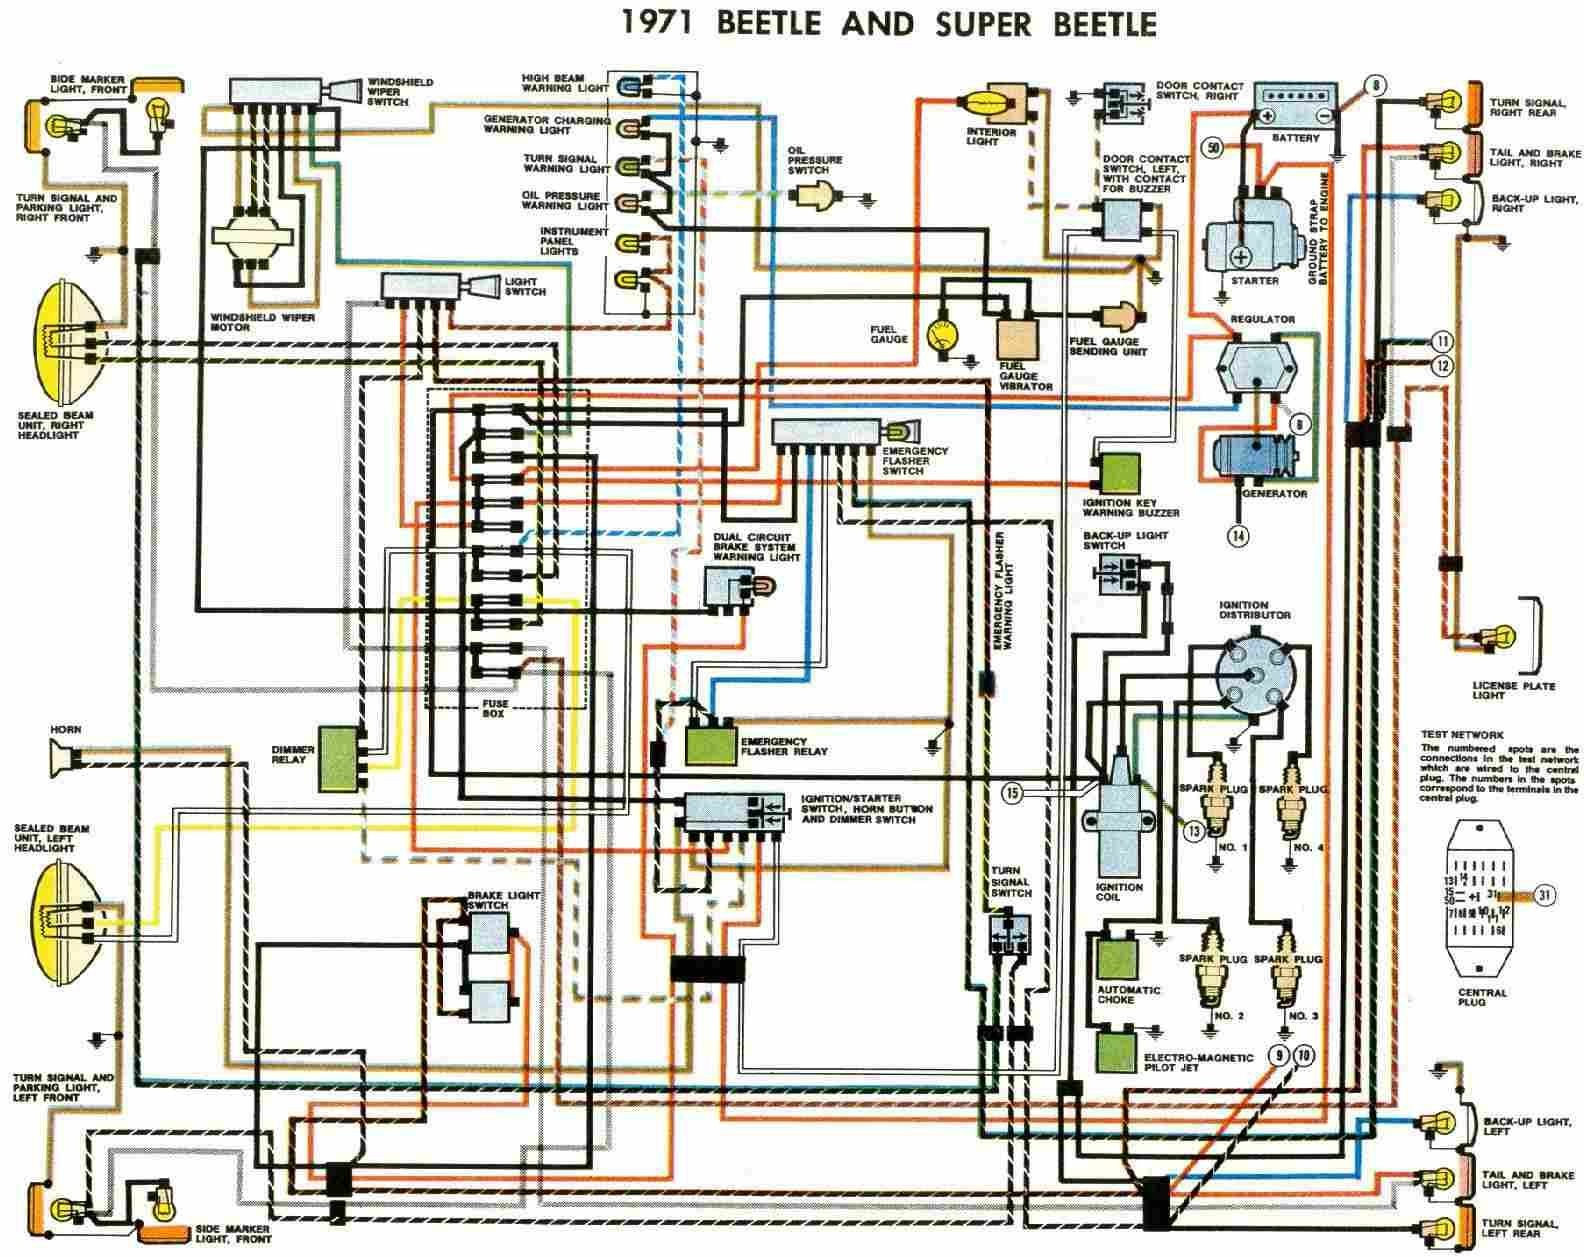 hight resolution of 1998 vw beetle wiring harness wiring diagram expert 1998 vw beetle wiring harness